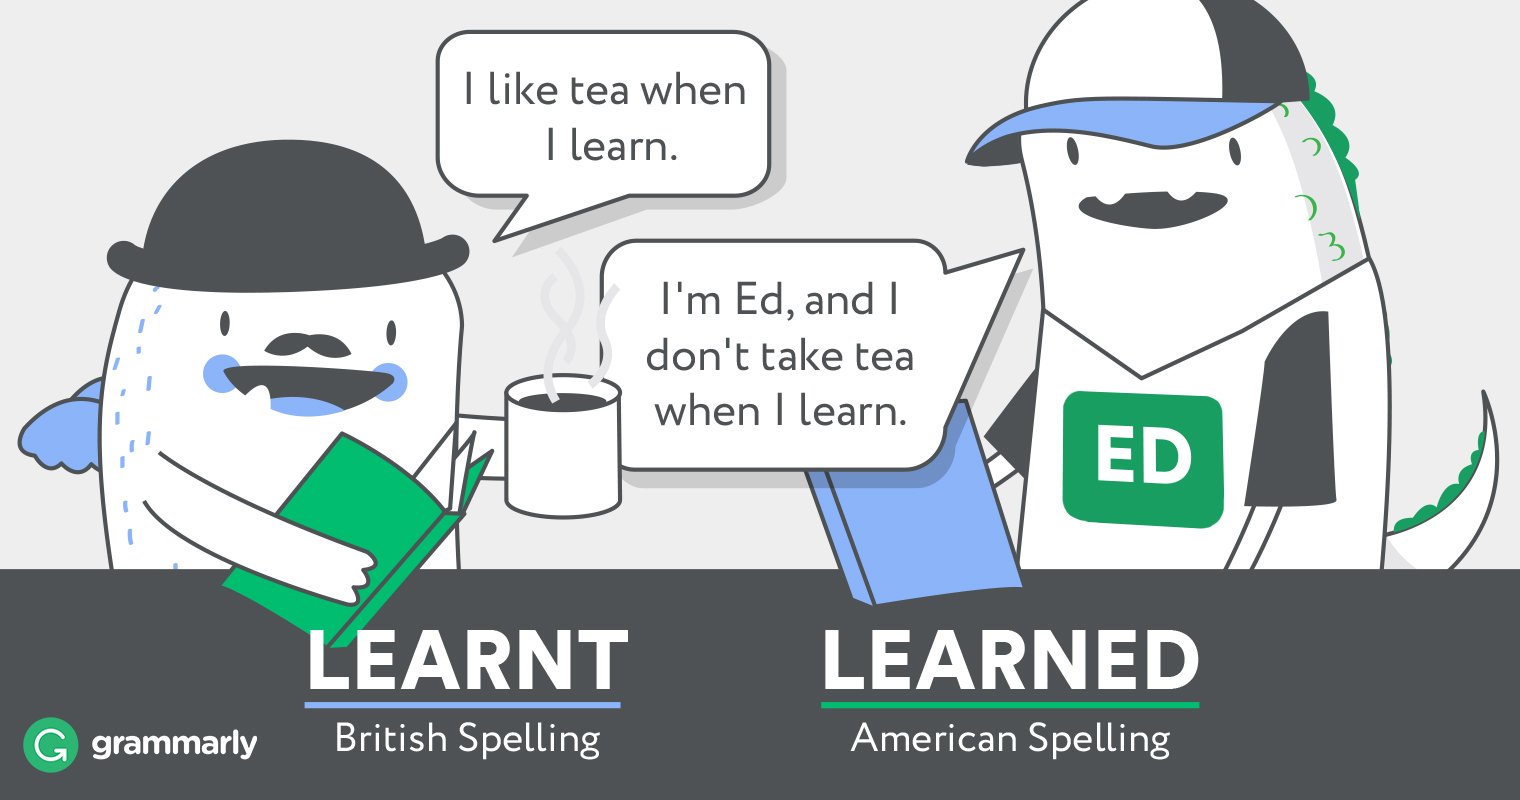 learned or learnt grammarly